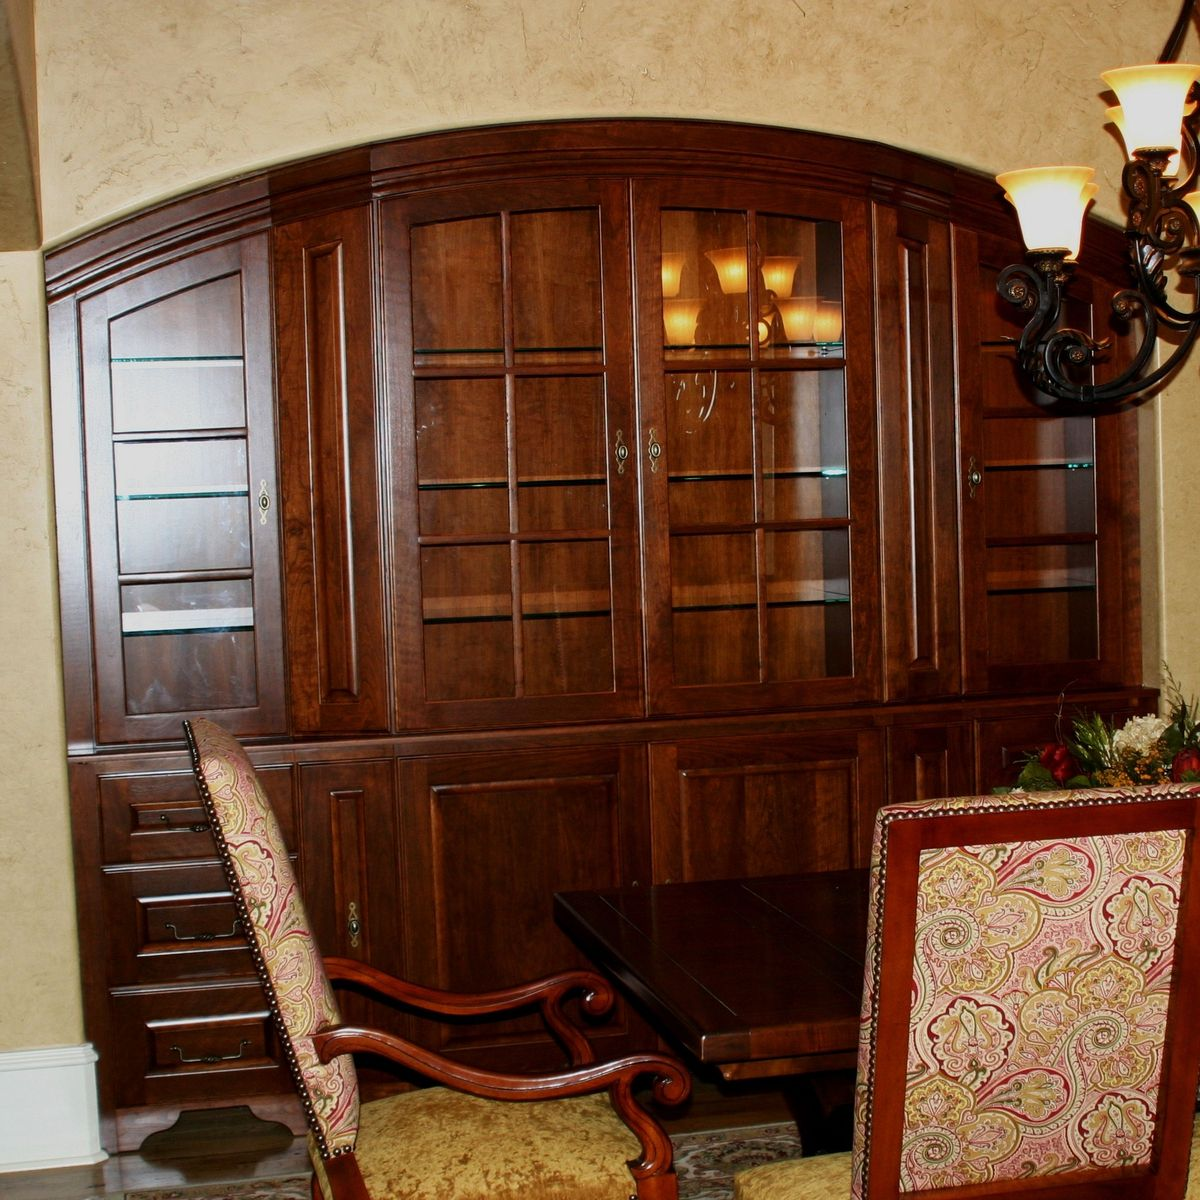 Custom Cherry Dining Room China Cabinet by Carolina Wood Designs ...